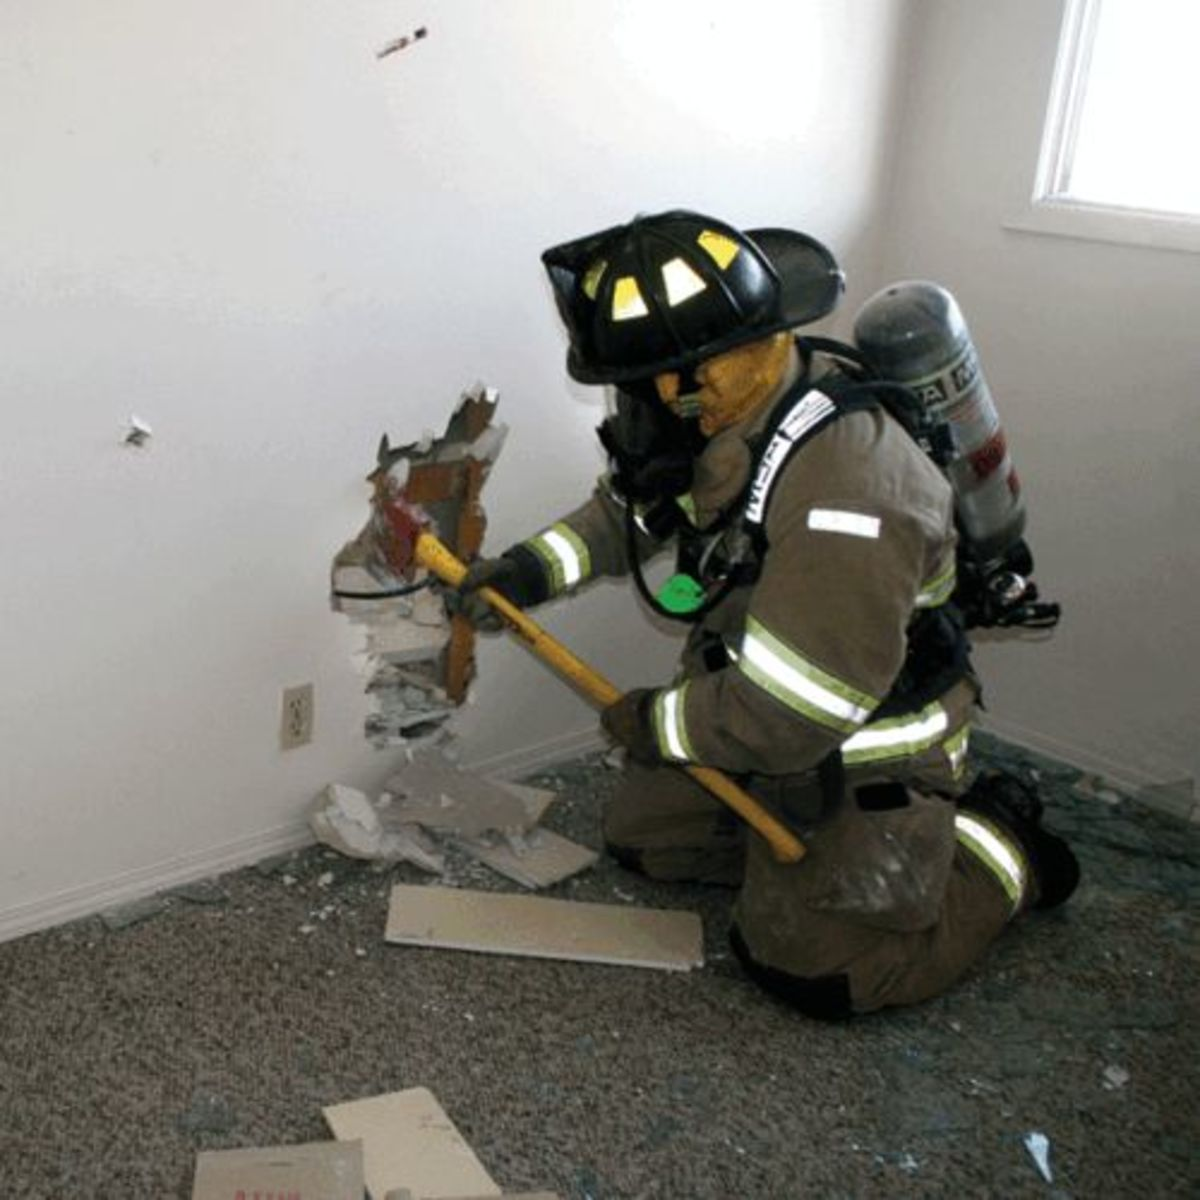 Firefighters must train to gain.